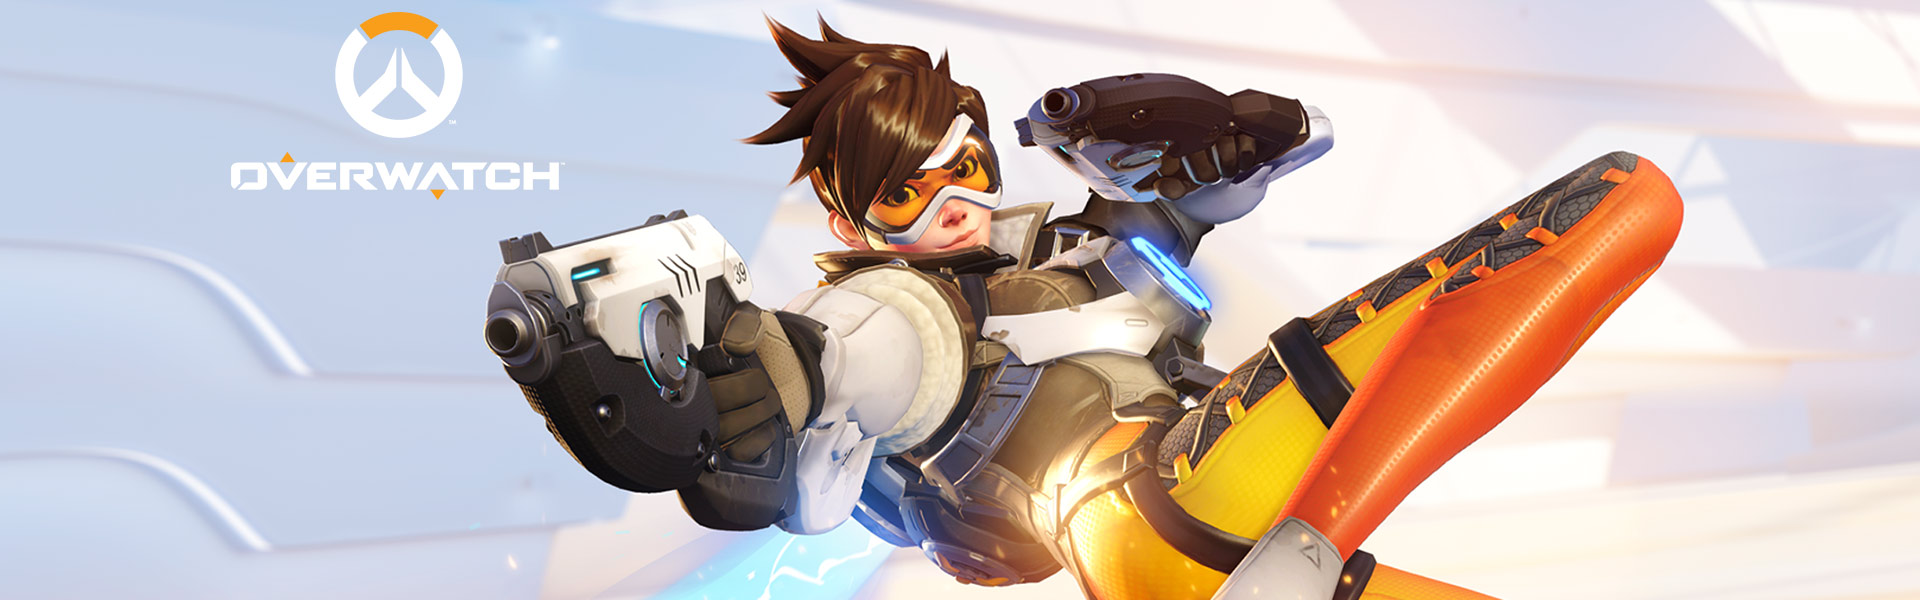 Front view of Overwatch hero Tracer holding her pistols out